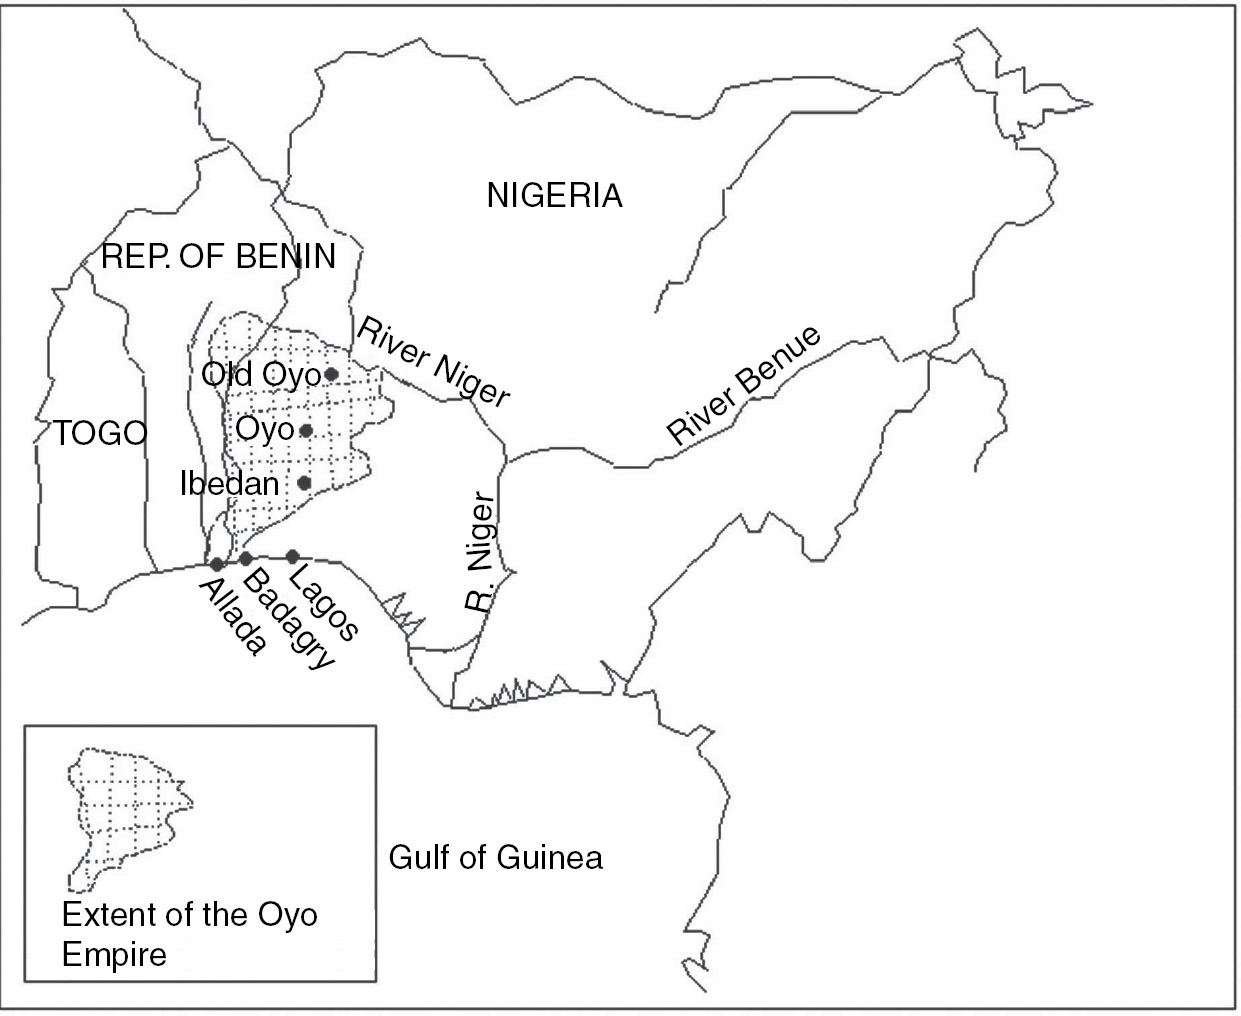 Long Historical Formations (Part I) - The Yoruba from ... on map of maiduguri, map of kingdom of prussia, map of nigerian civil war, map of borno state, map of benin city, map of ibadan, map of zulu kingdom, map of dutch east indies, map of new france, map of kingdom of castile, map of yoruba, map of kingdom of kush, map of ghana, map of democratic republic of the congo, map of fatimid caliphate, map of gombe state, map of kano, map of kingdom of nri, map of katsina,